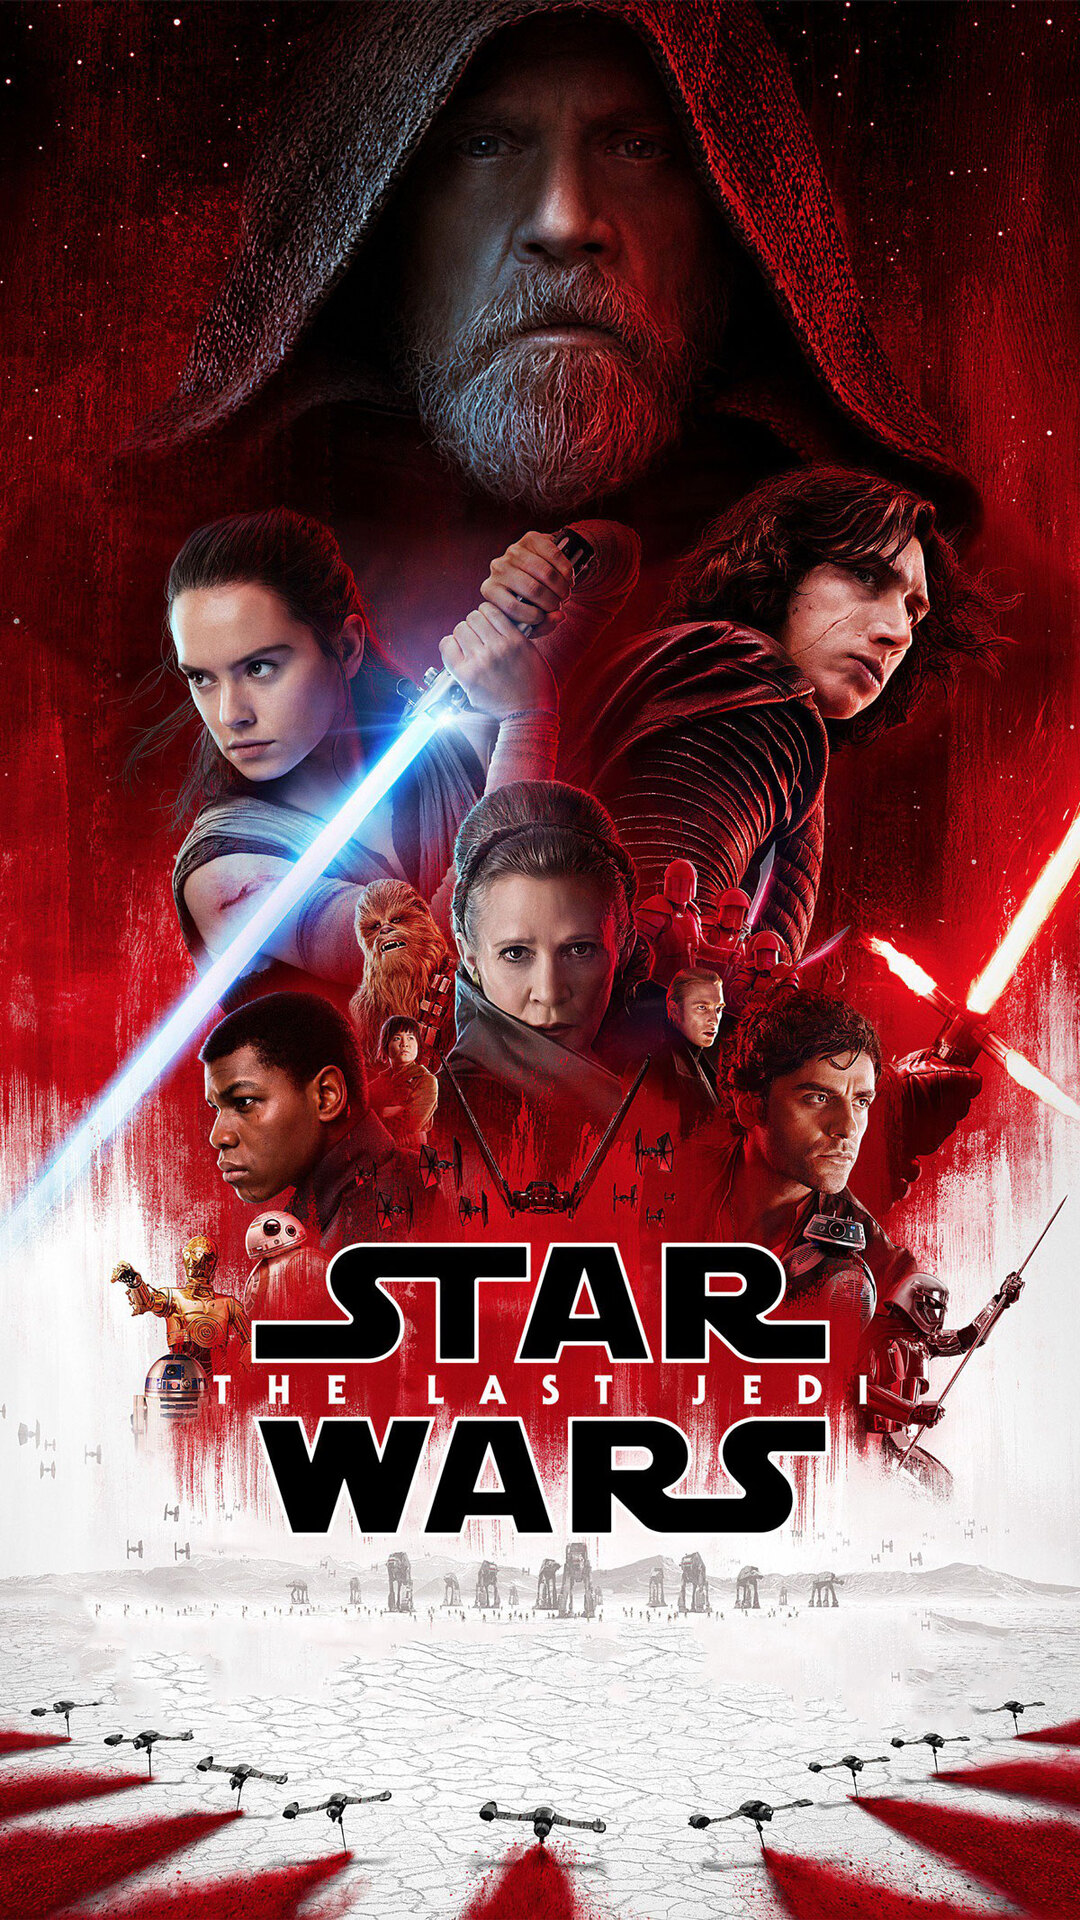 star-wars-the-last-jedi-hd-99.jpg